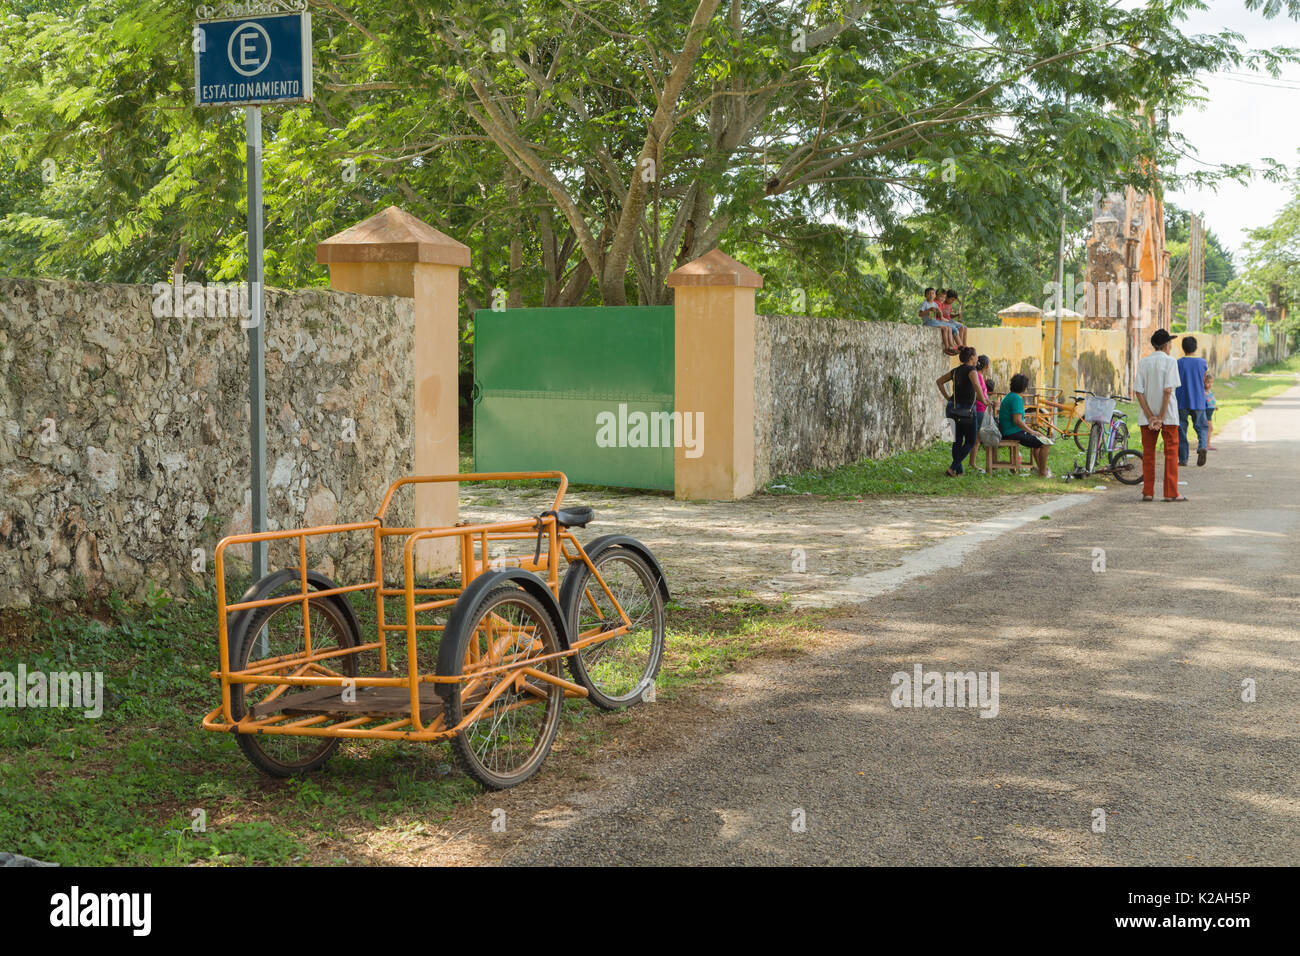 Residents of Yaxcopoil spend their afternoon socializing for a brief moment outside Hacienda Yaxcopoil, Yaxcopoil, Yucatan, Mexico. - Stock Image